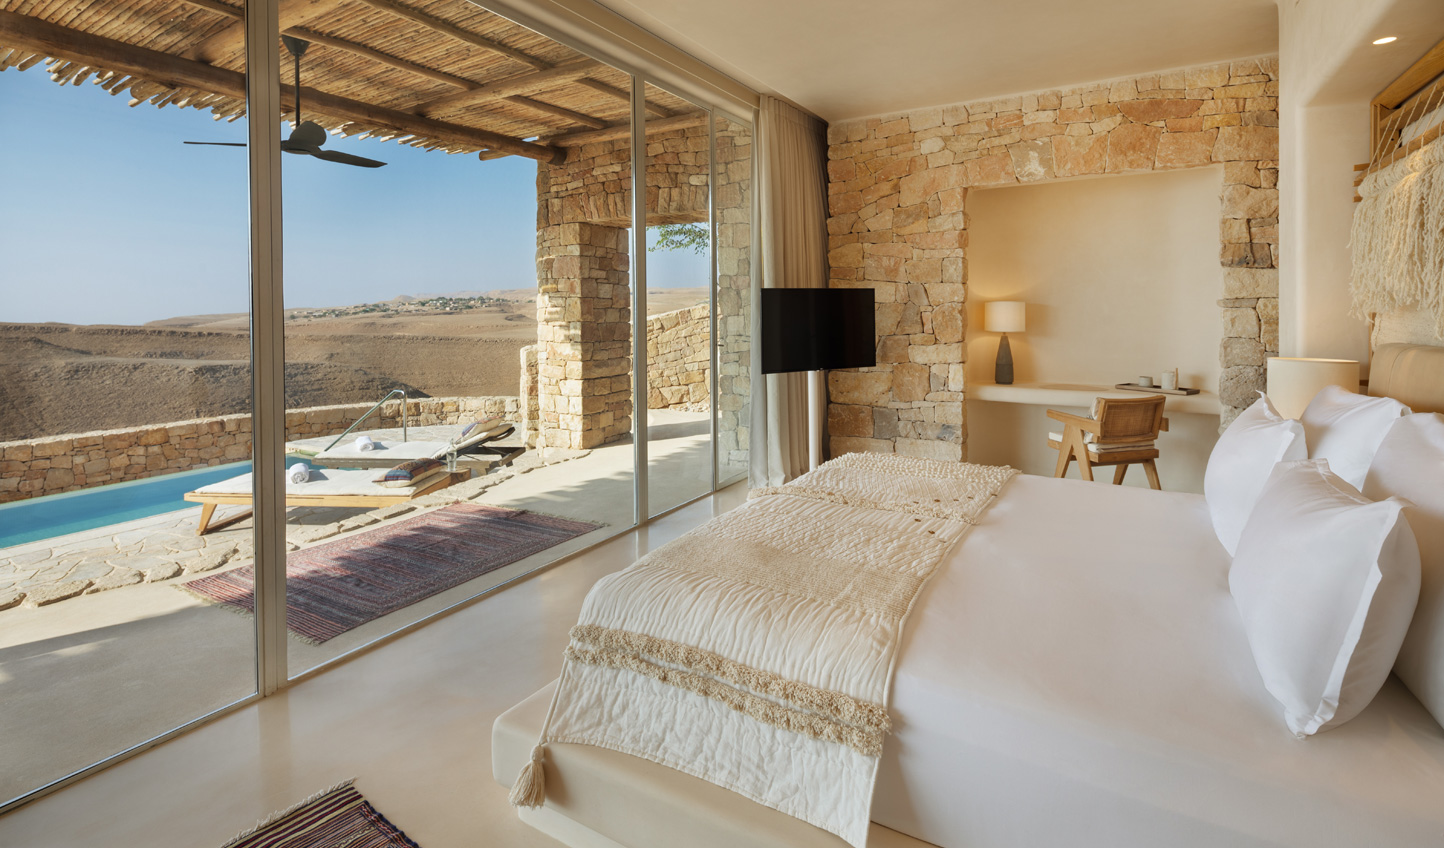 Gaze out over the desert from your luxurious room at Six Senses Shaharut